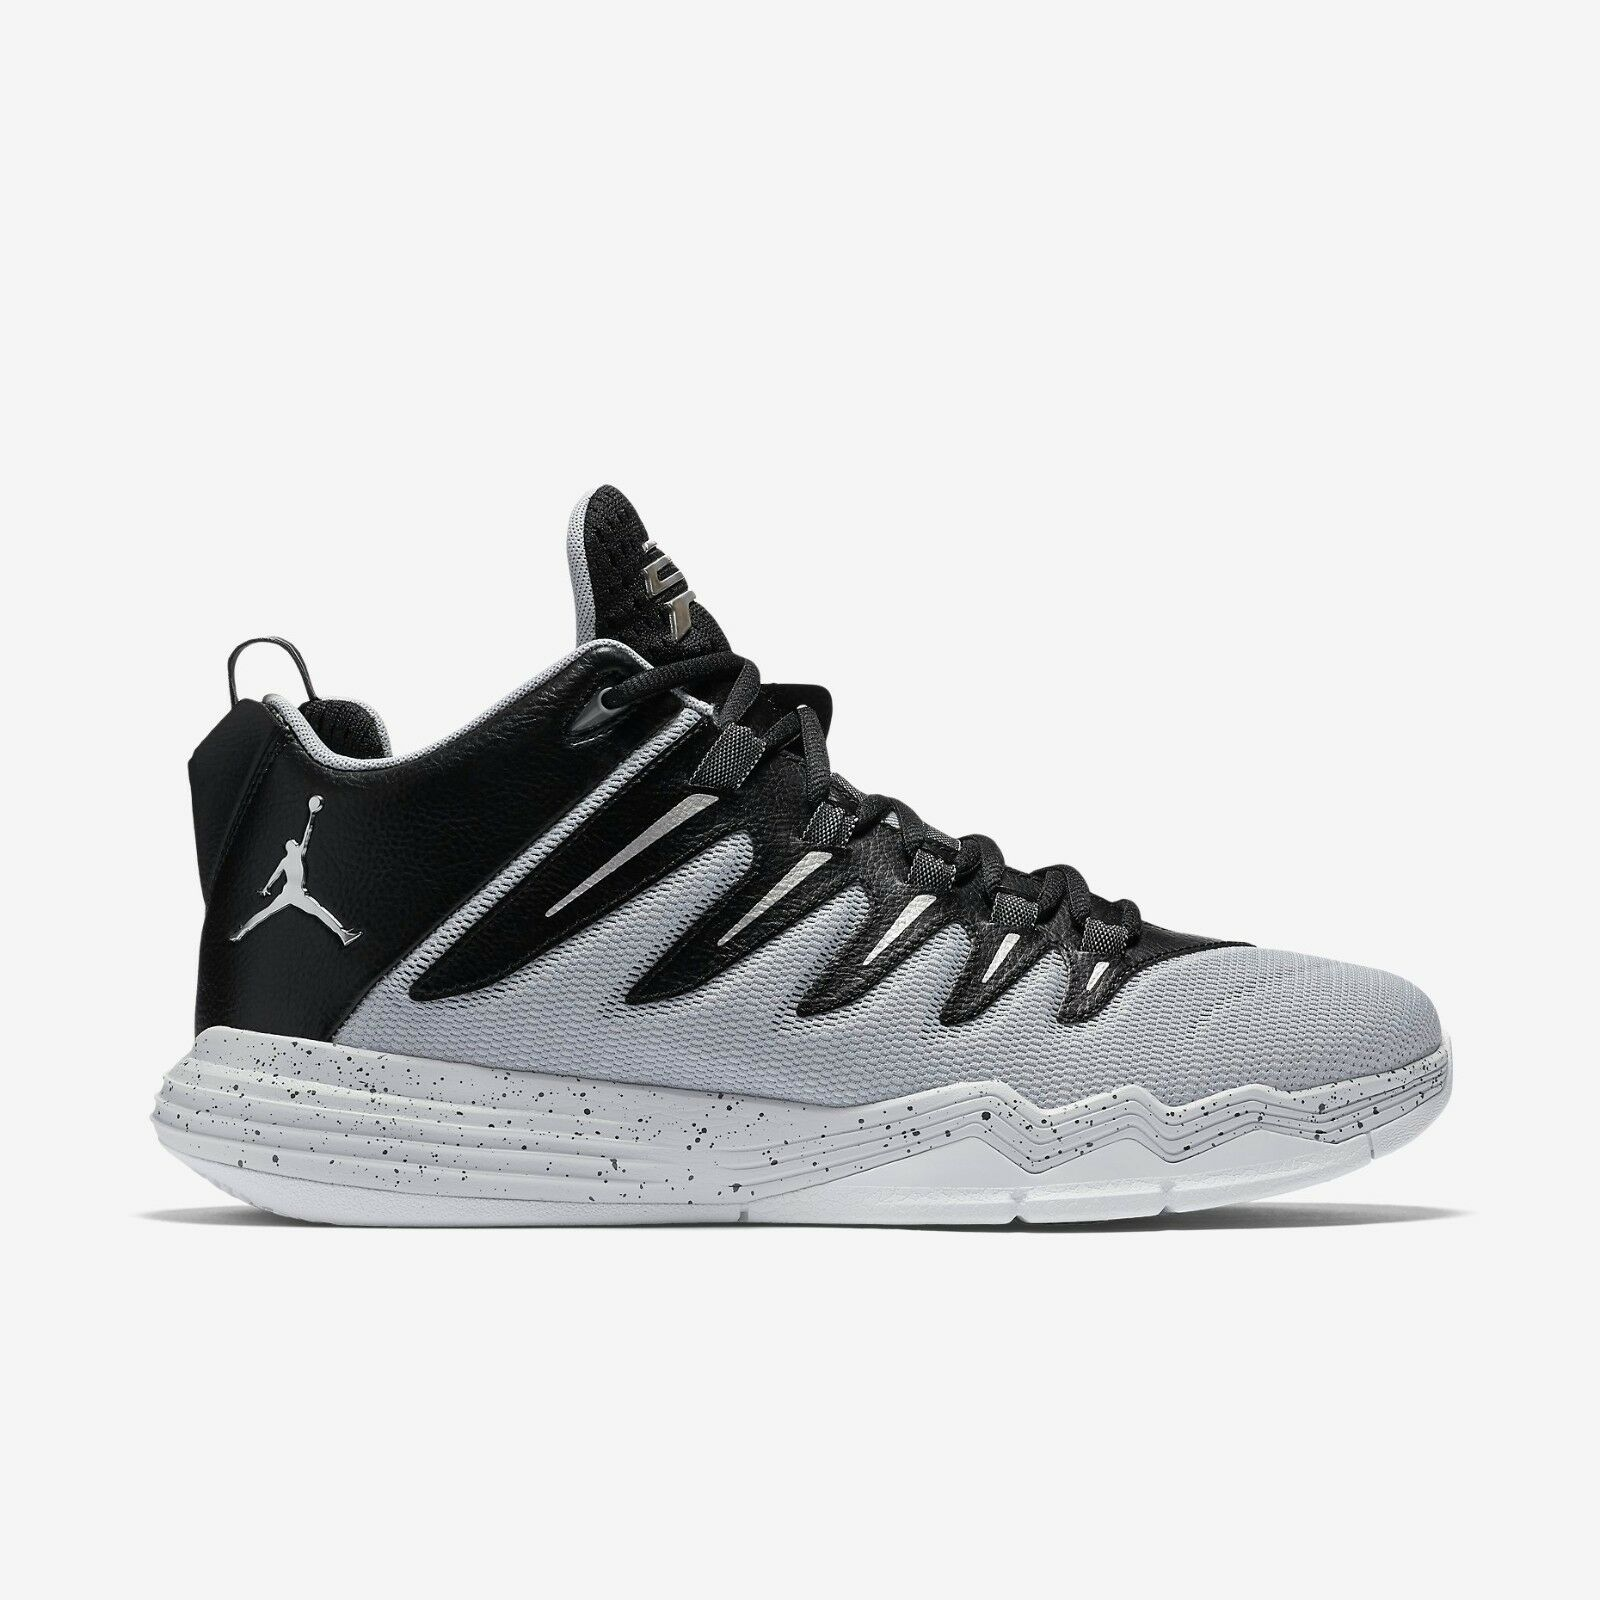 New Men's Jordan CP3.IX Shoes Price reduction  Men US 9.5 / Eur 43 best-selling model of the brand